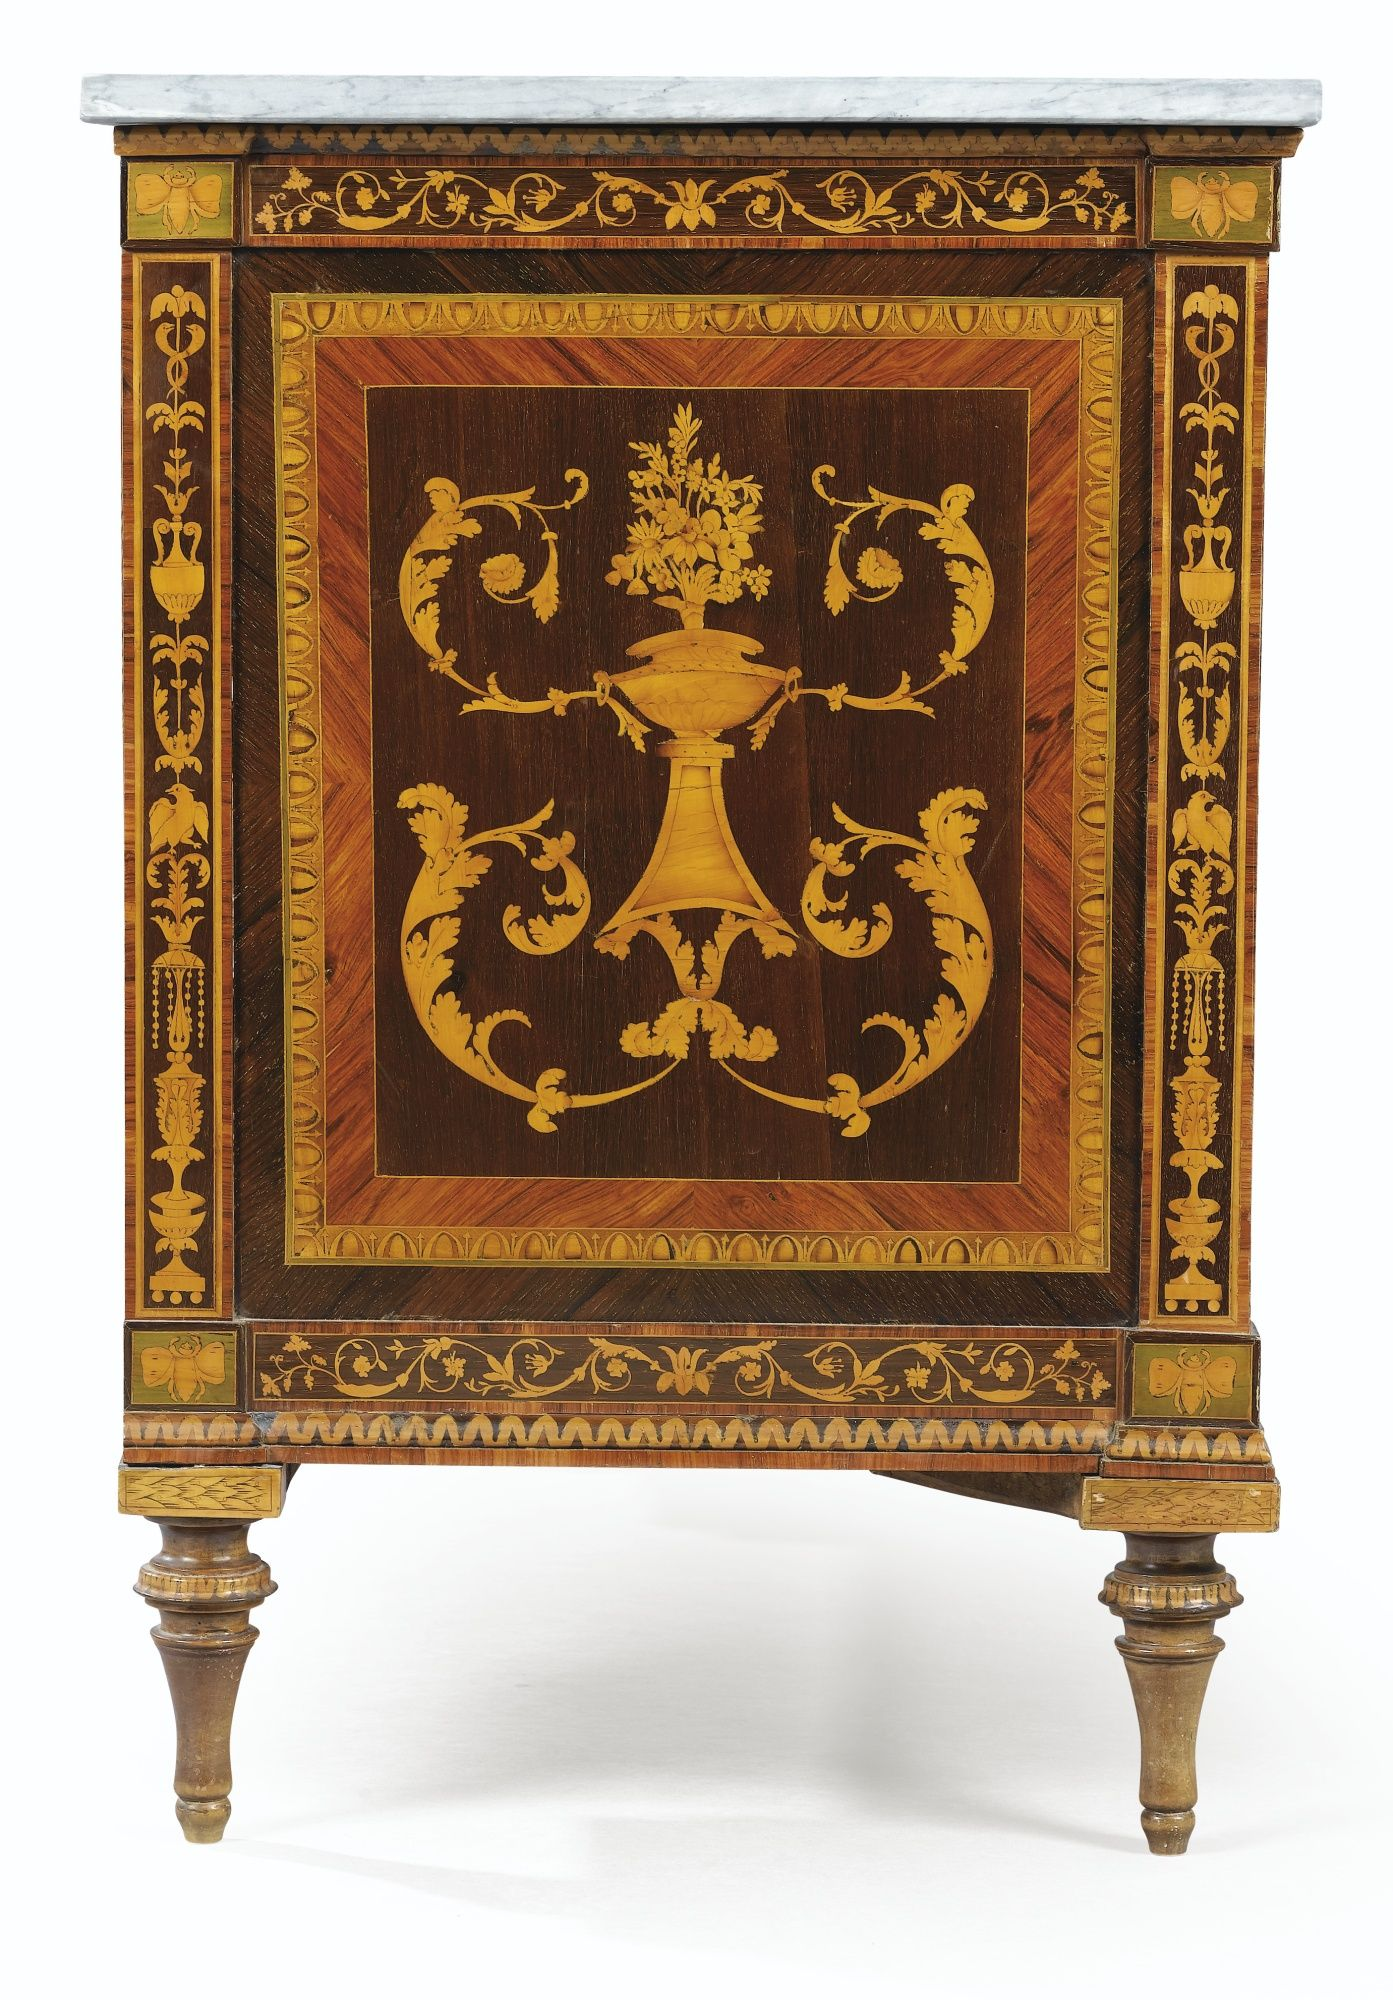 AN ITALIAN MARQUETRY COMMODE, LATE 18TH CENTURY, WORKSHOP OF GIUSEPPE  MAGGIOLINI (1738